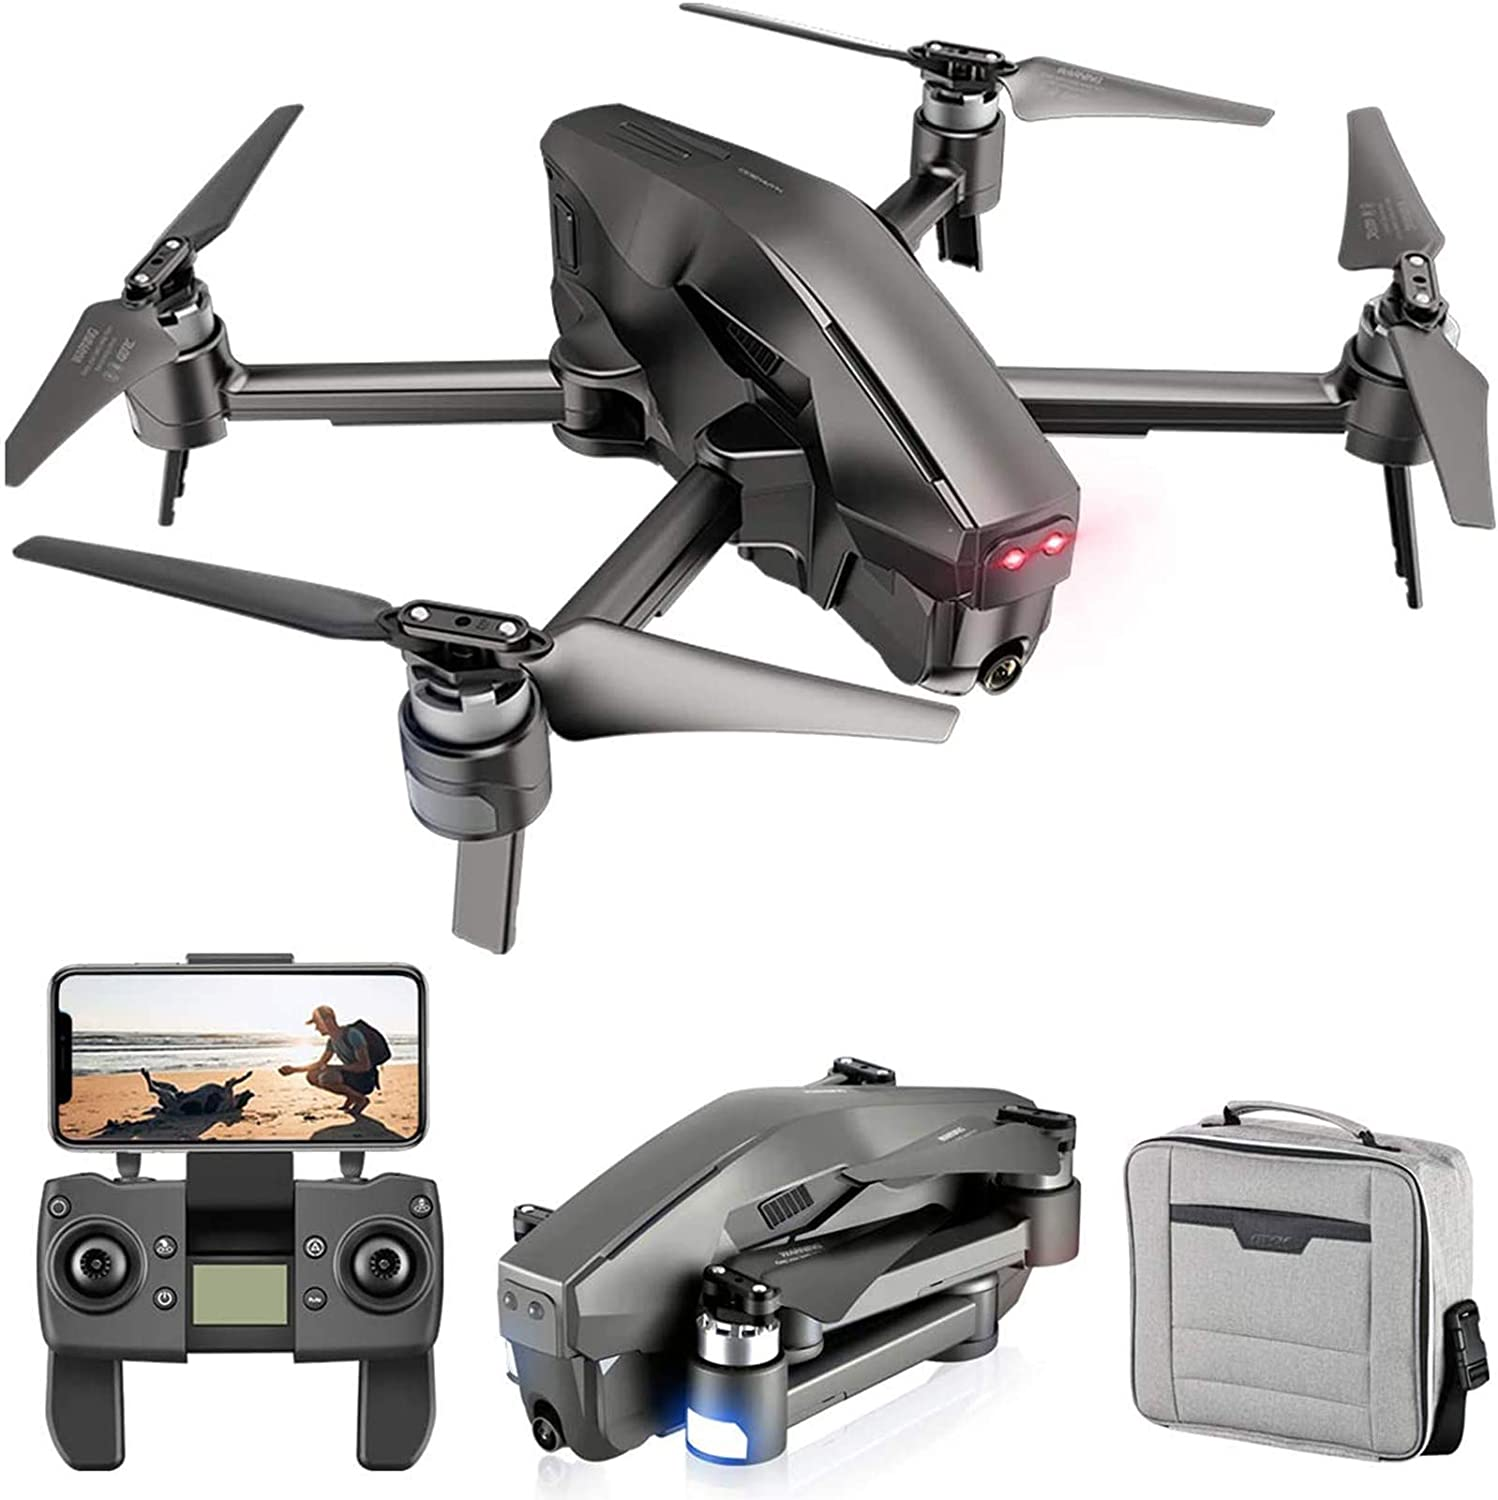 KLJJQAQ Foldable GPS Drone with Inventory New arrival cleanup selling sale 4K FPV FHD Camer Transmission 5G